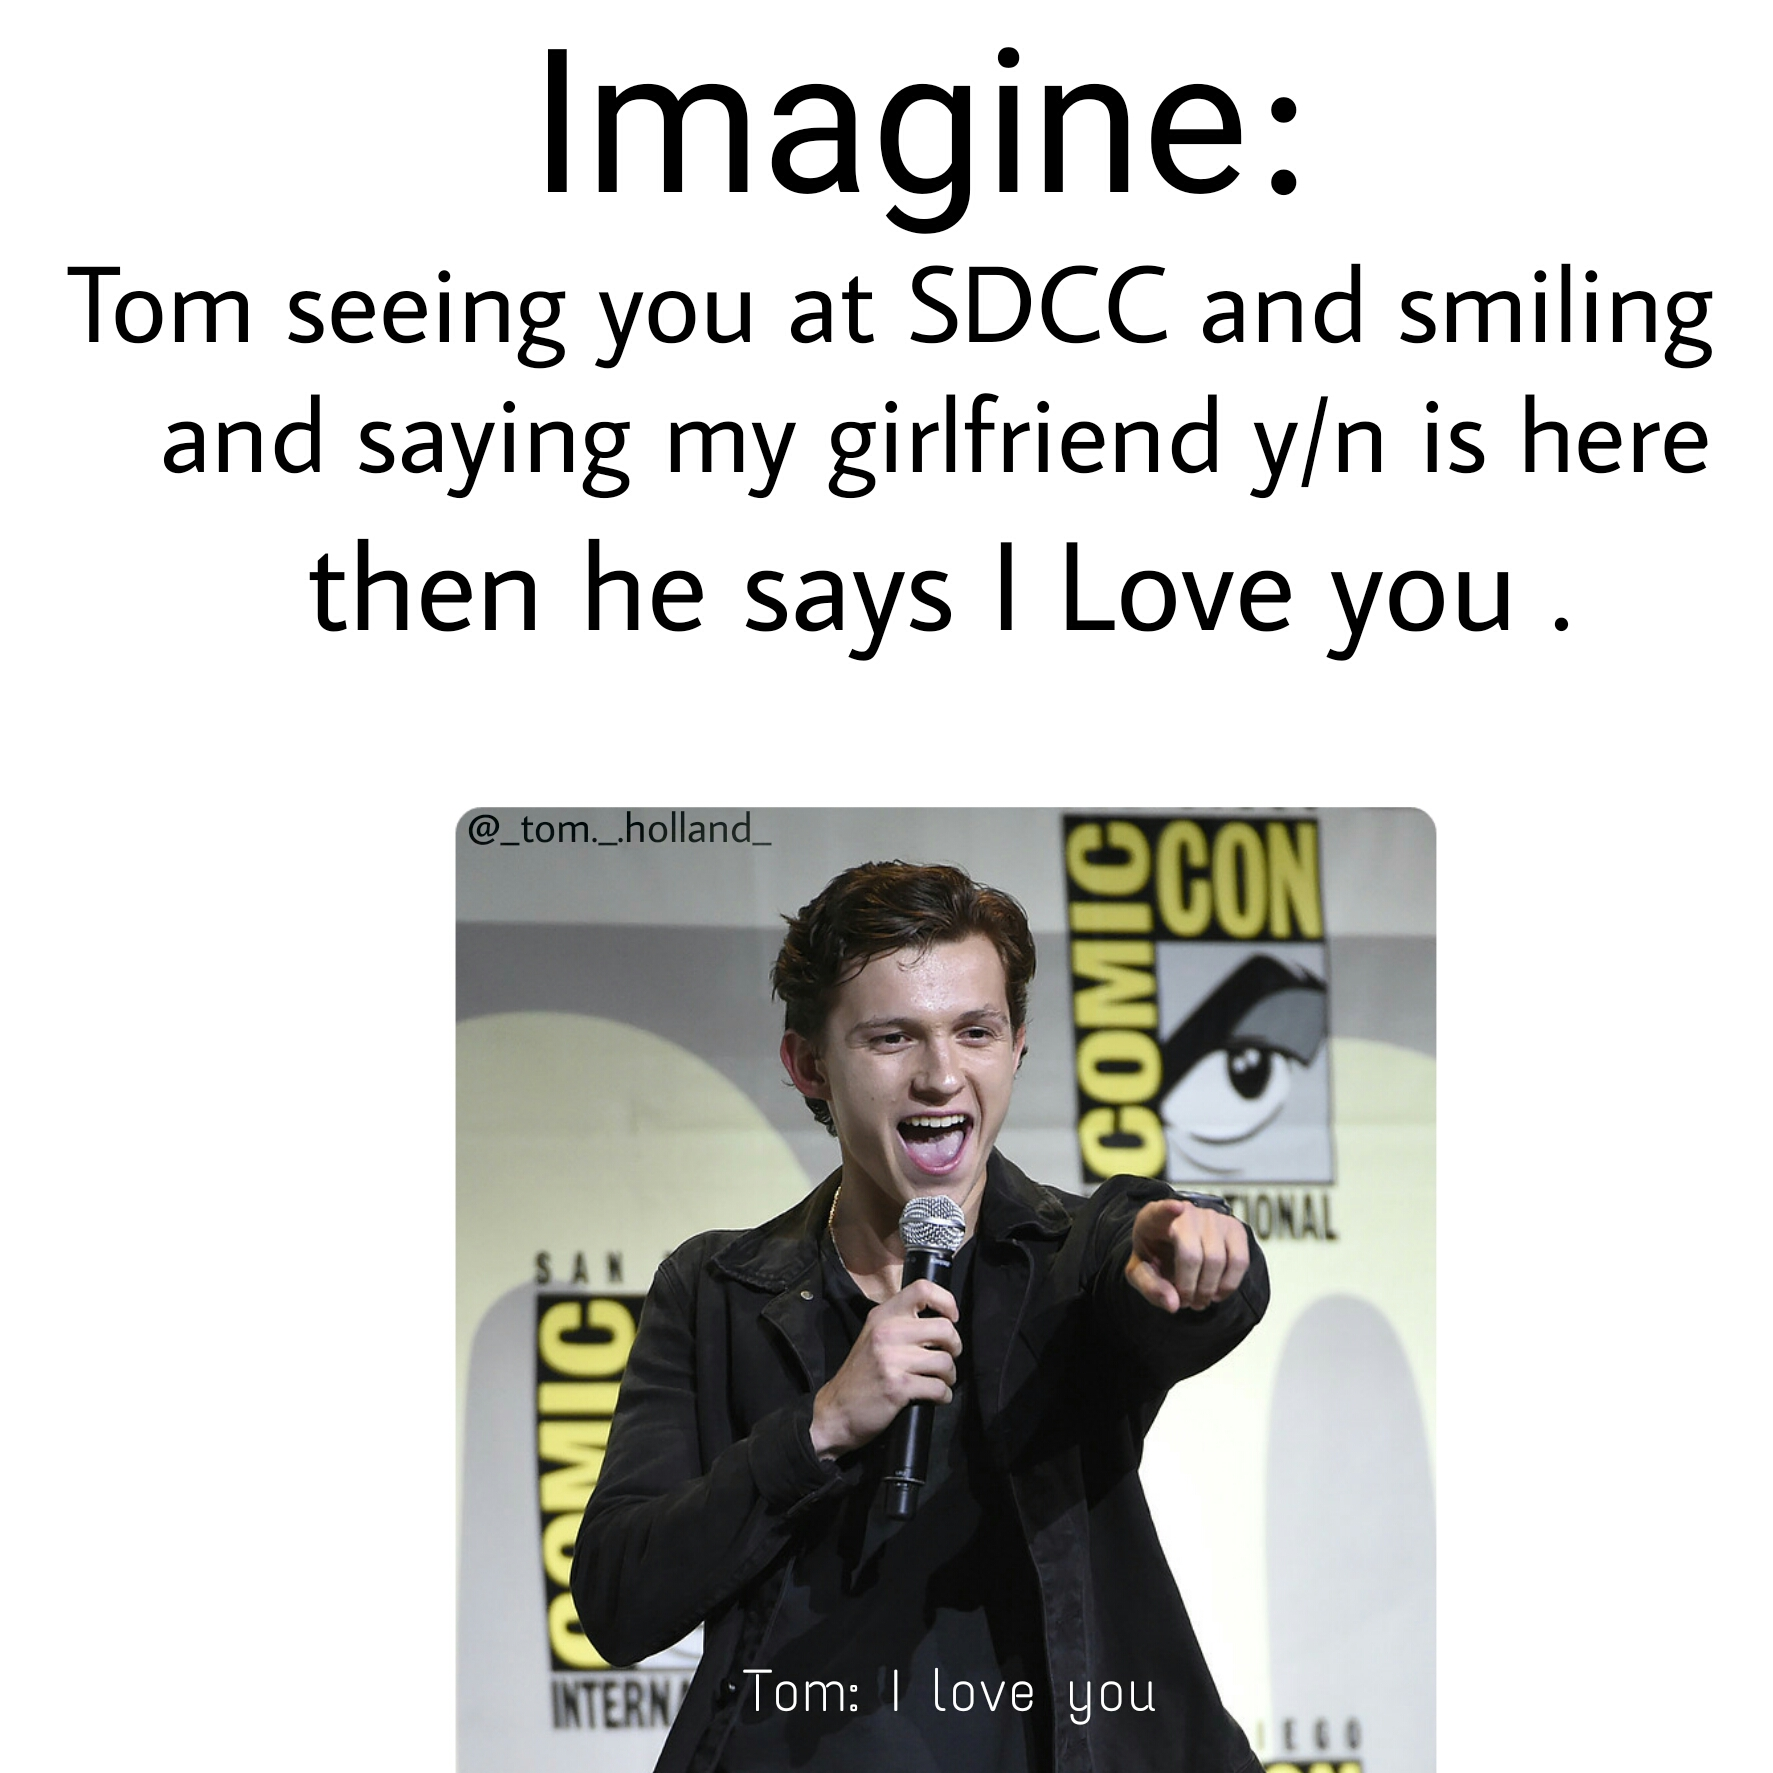 My first imagine💙 tomholland - Image by